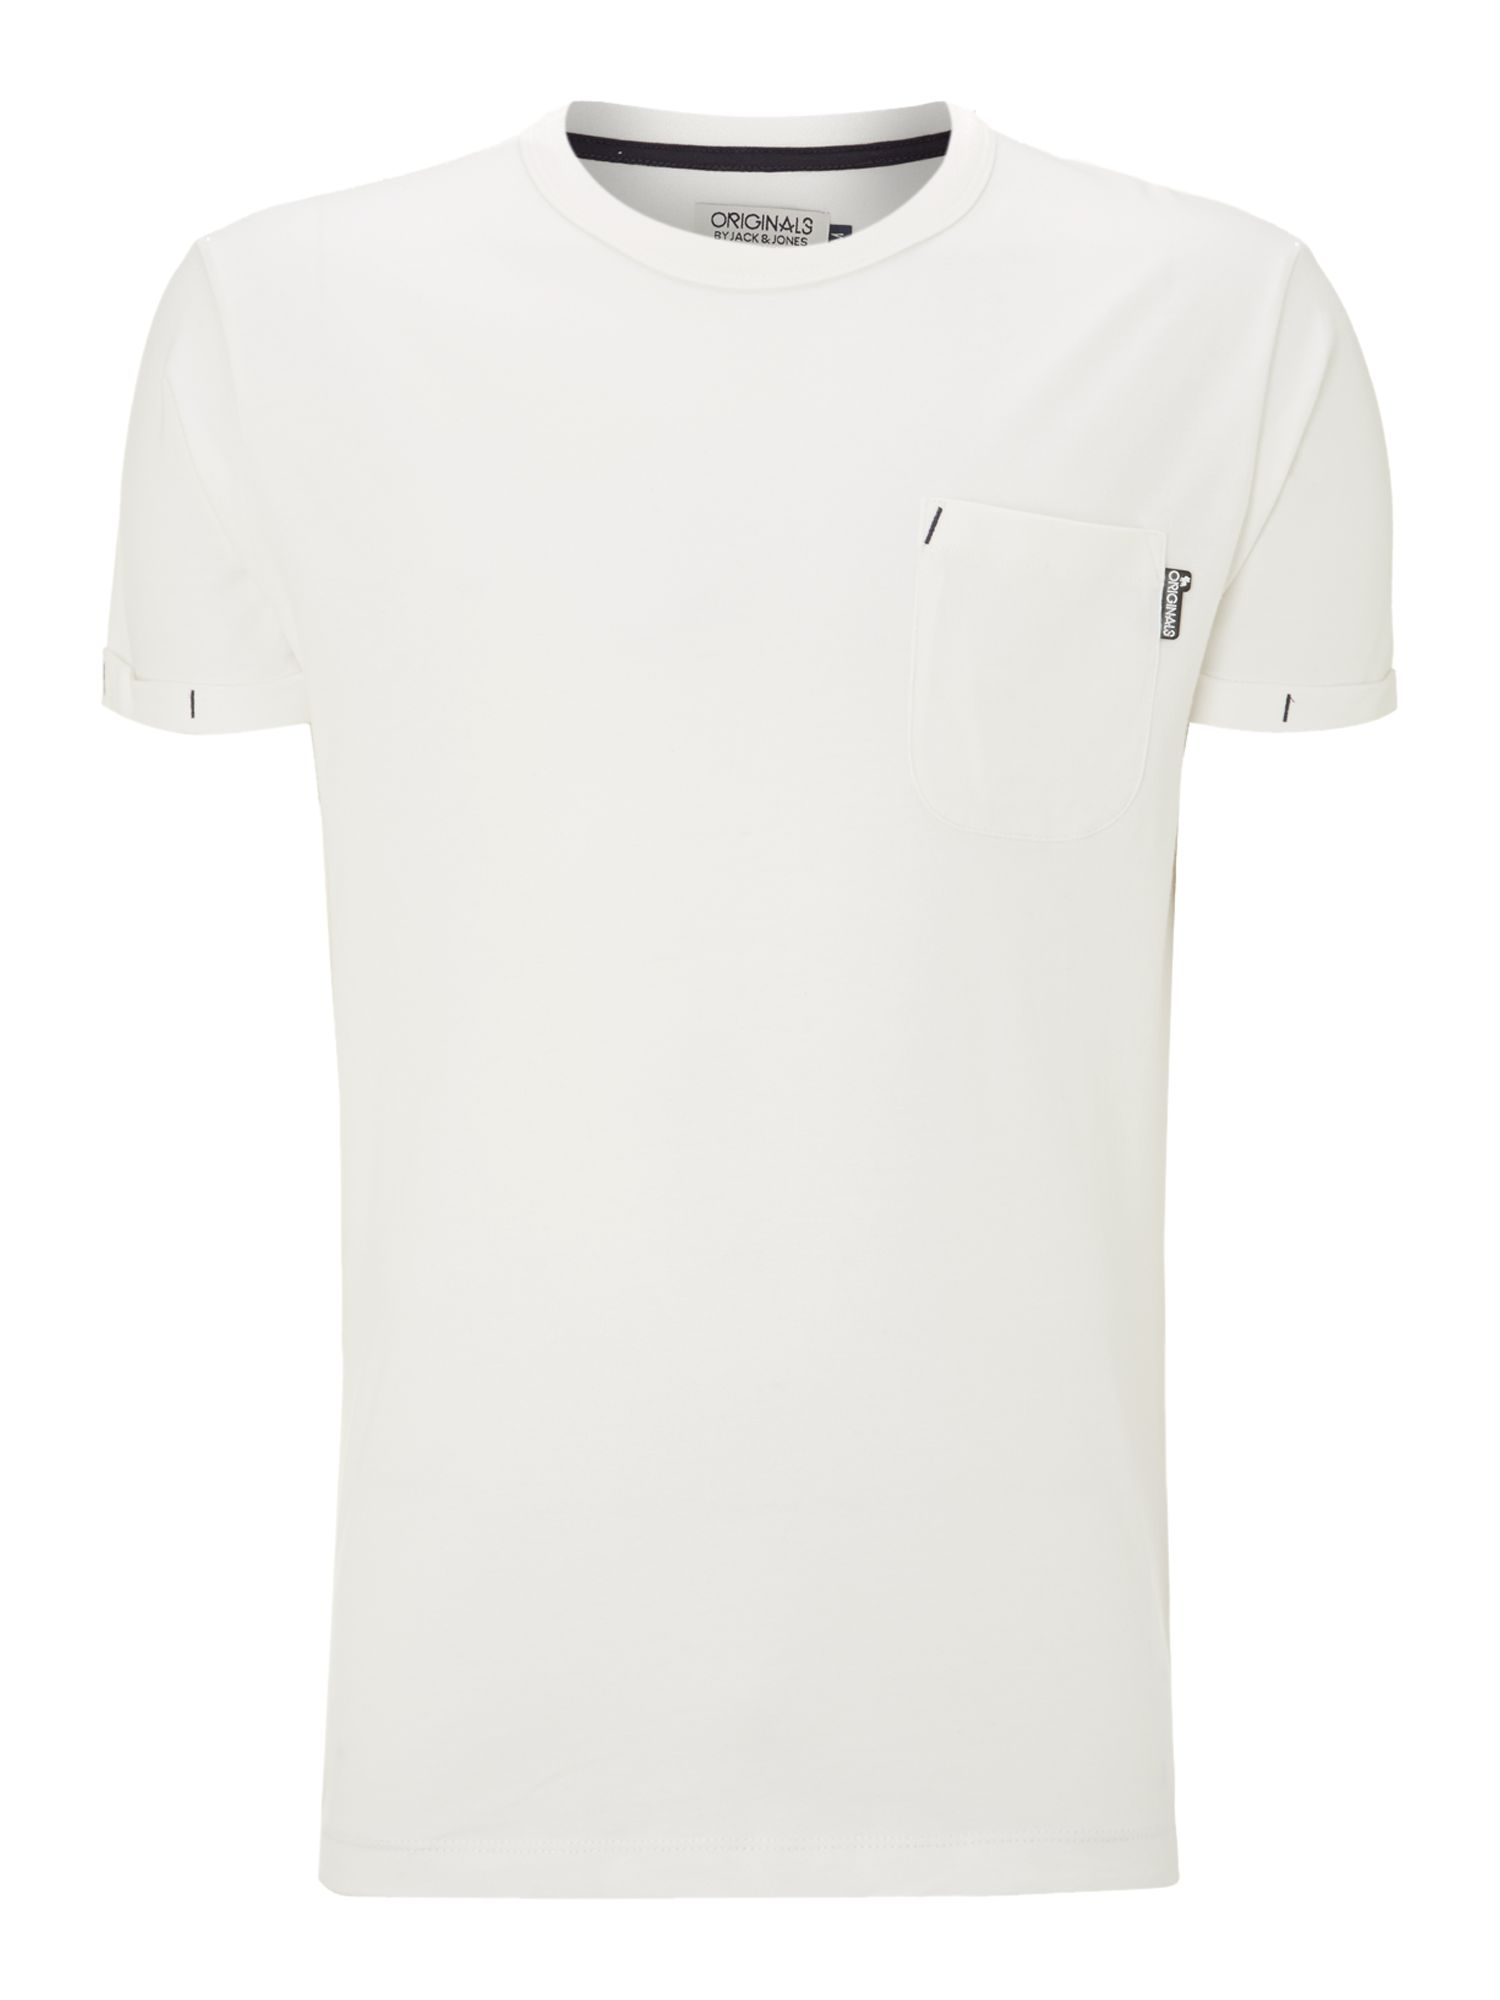 Essential short sleeve t-shirt